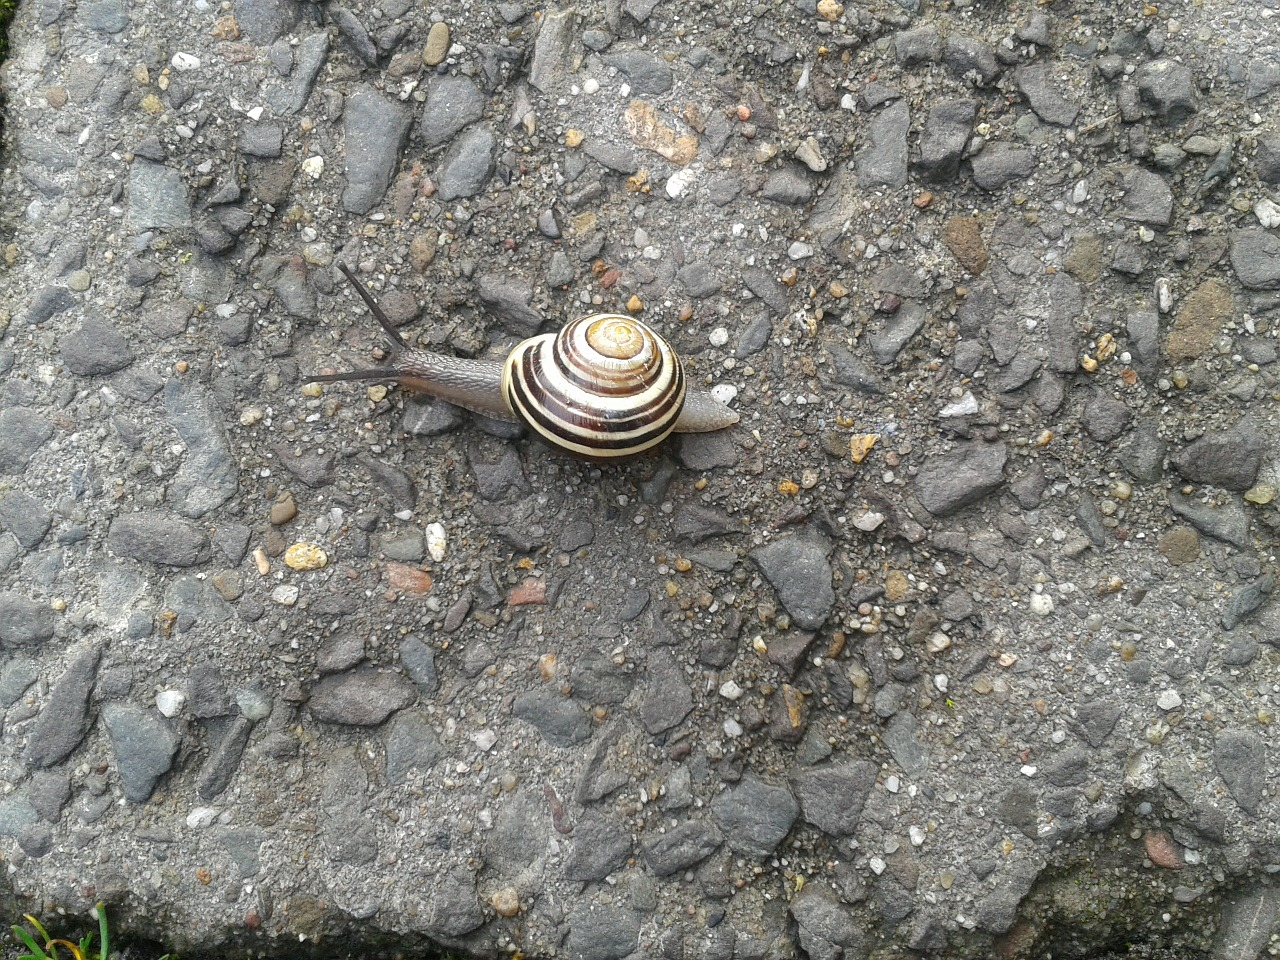 snail slowly sneak free photo